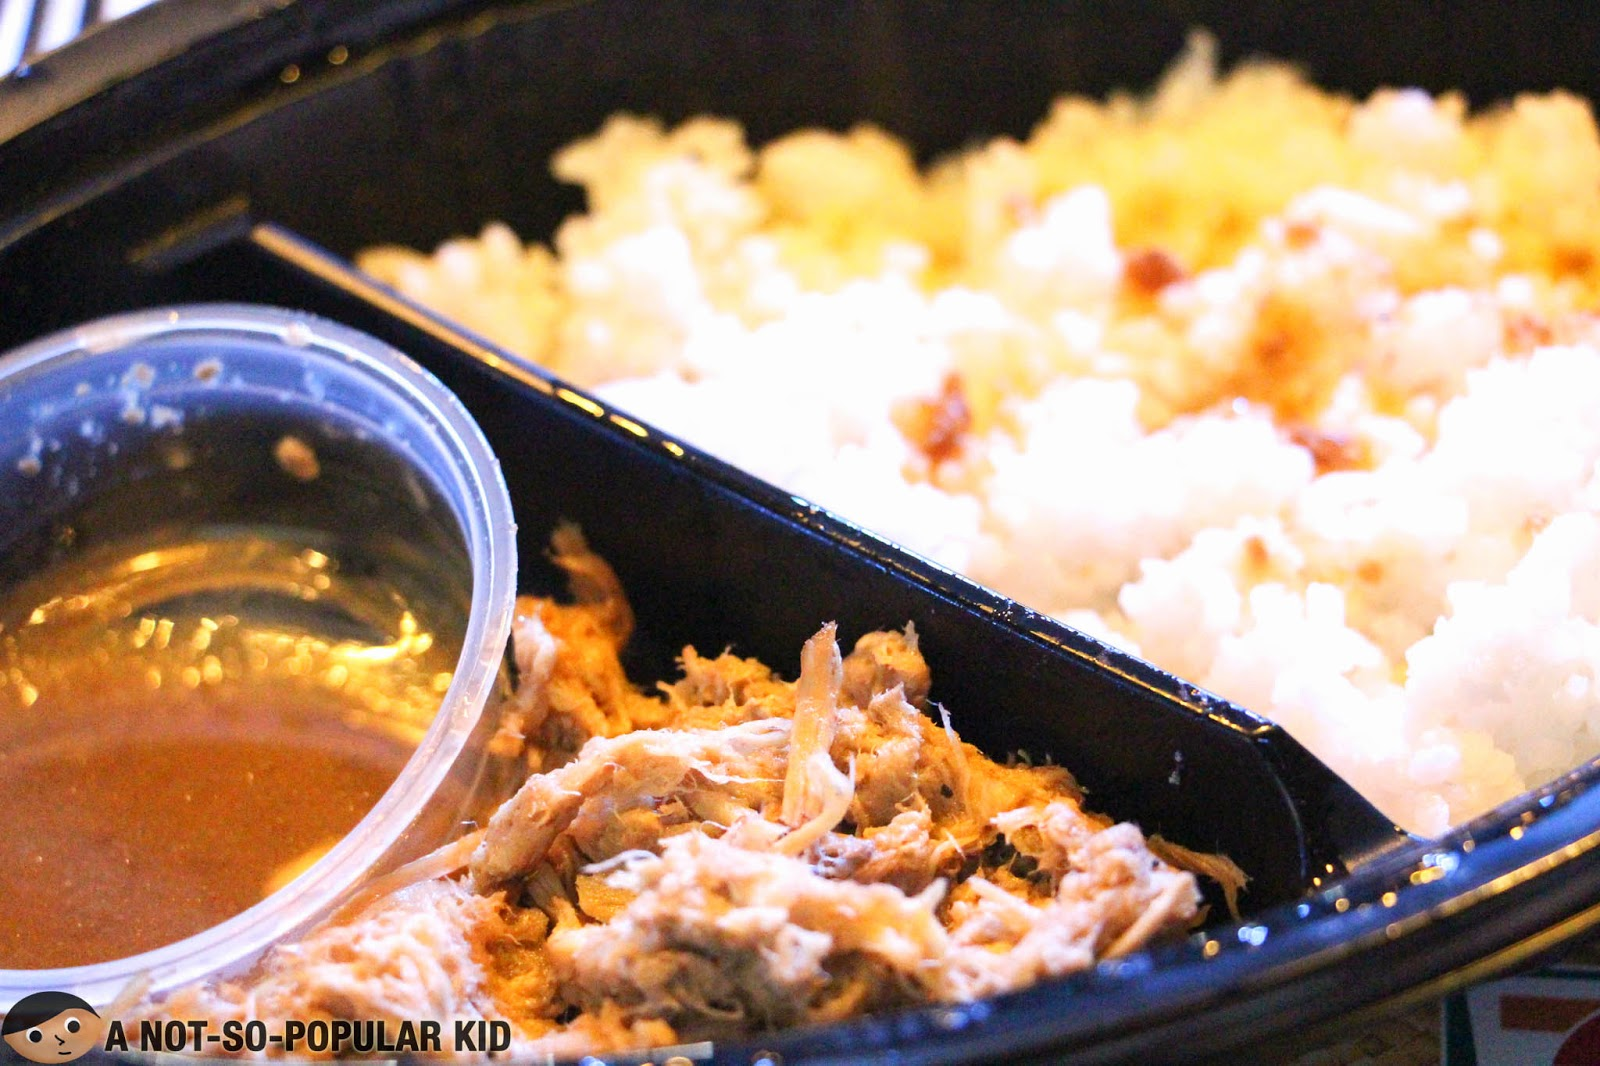 A closer look of the Pulled Pork with Adobo Dip of 7 Eleven's Chef Creations